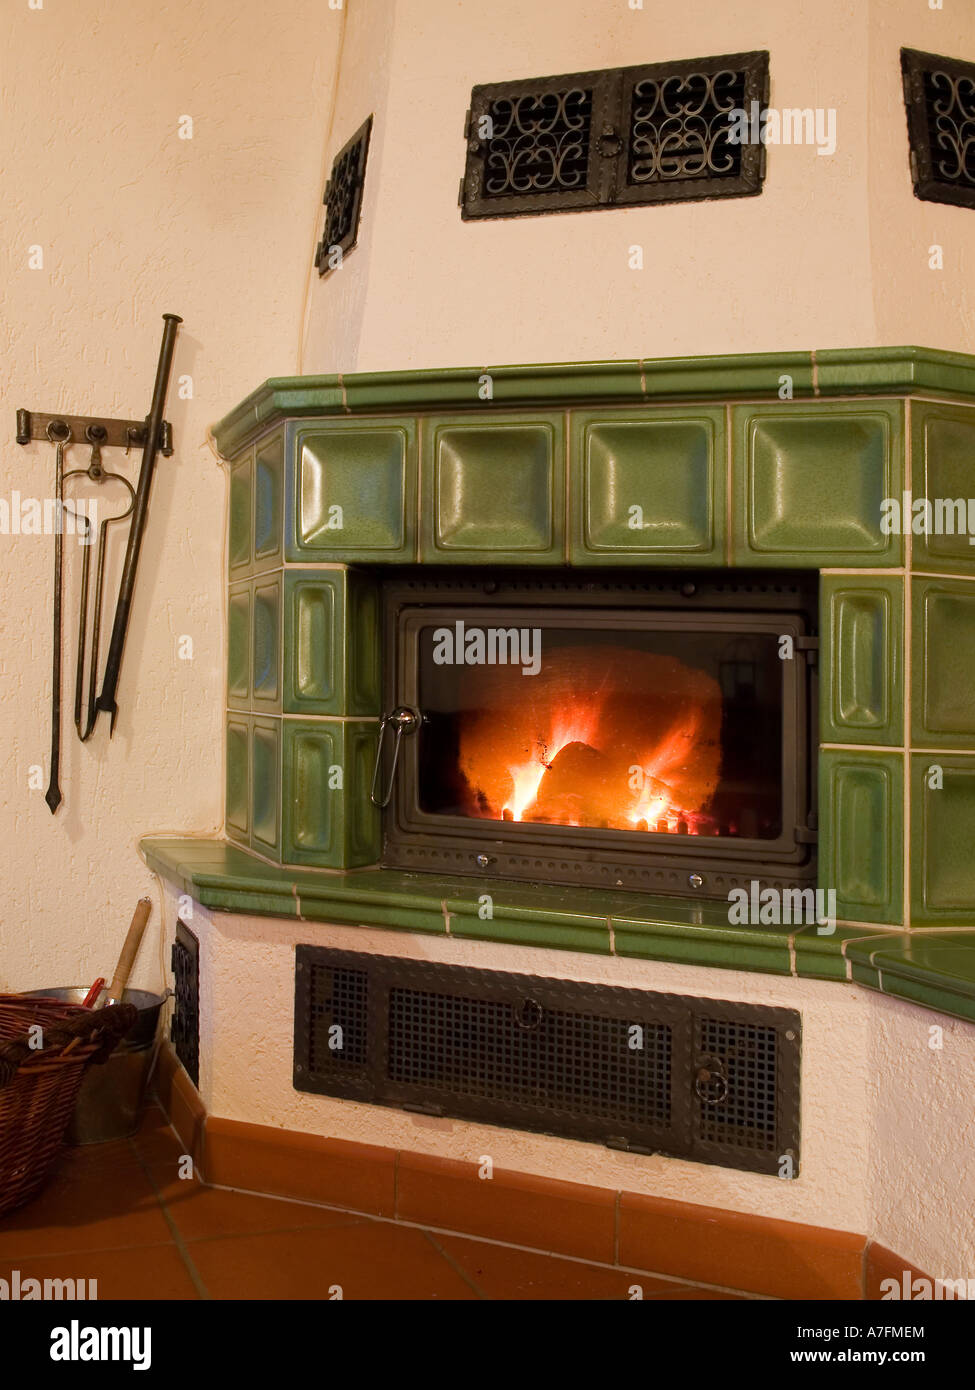 tiled stove burning with firewood in typical German way - Stock Image